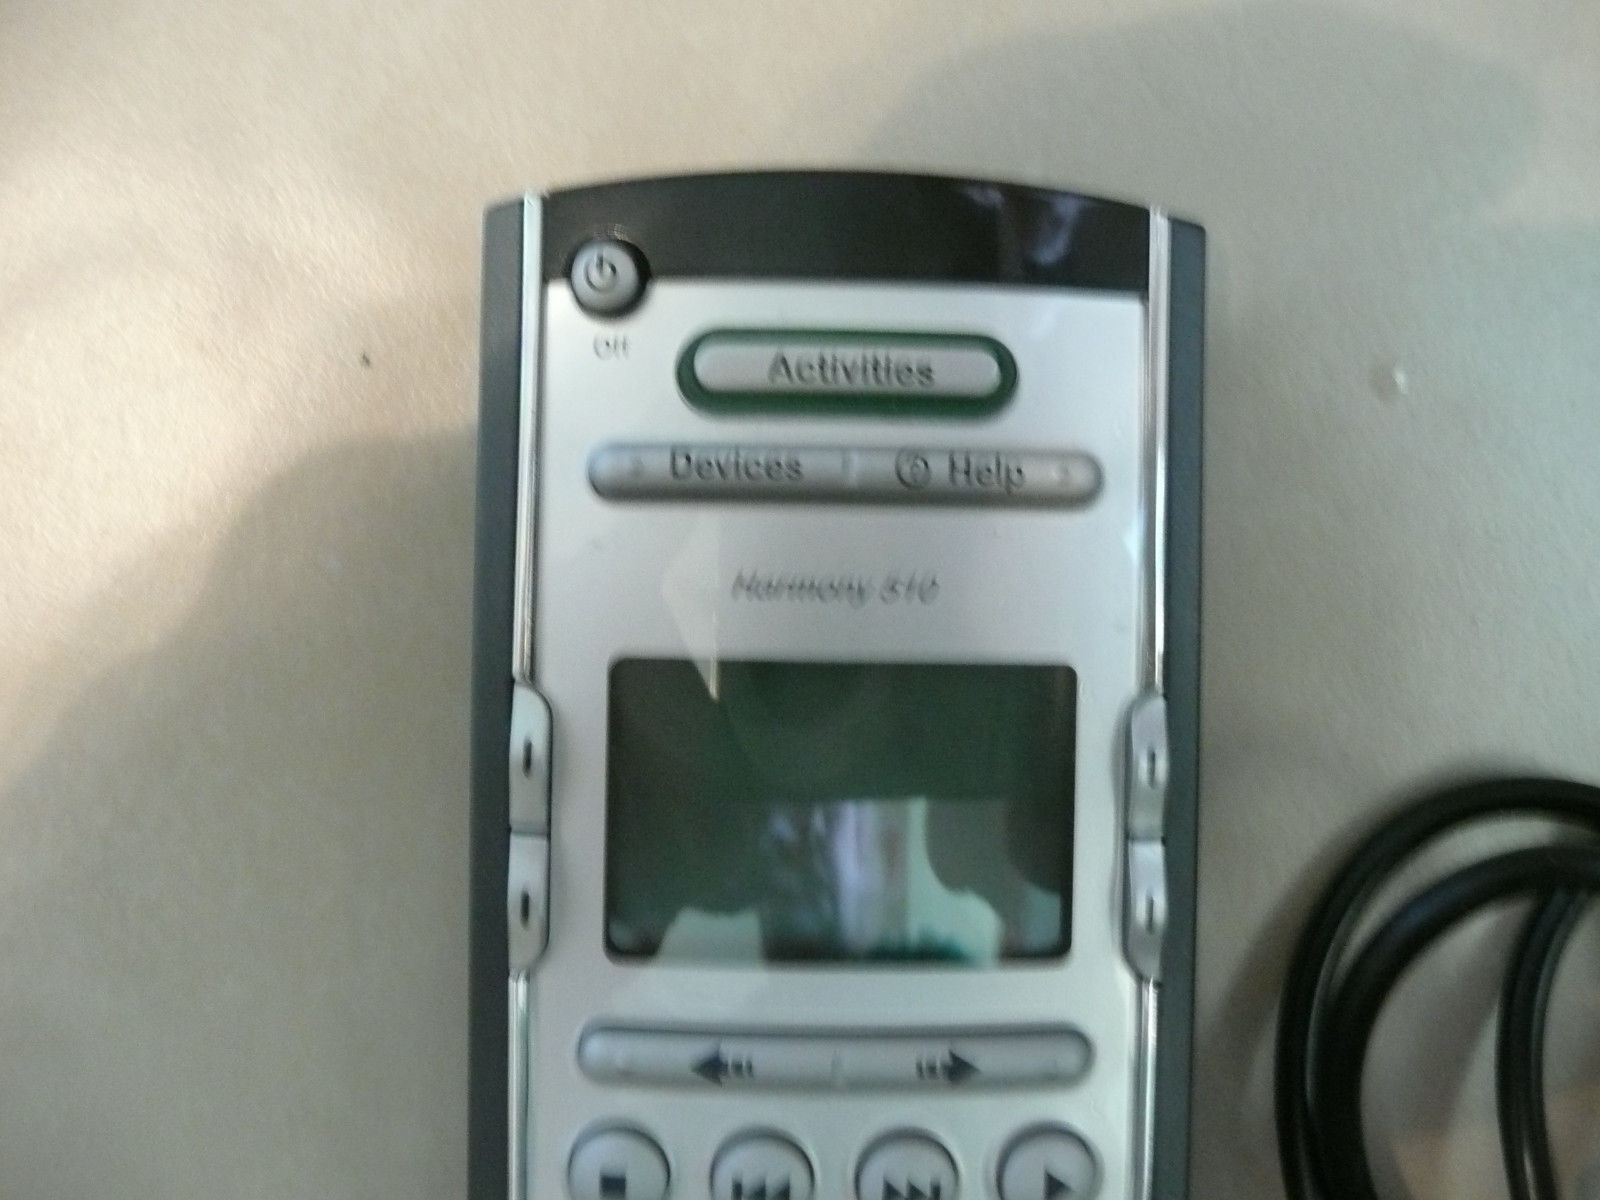 Logitech Harmony 510 Universal LCD Learning Remote Control w/ USB Cable